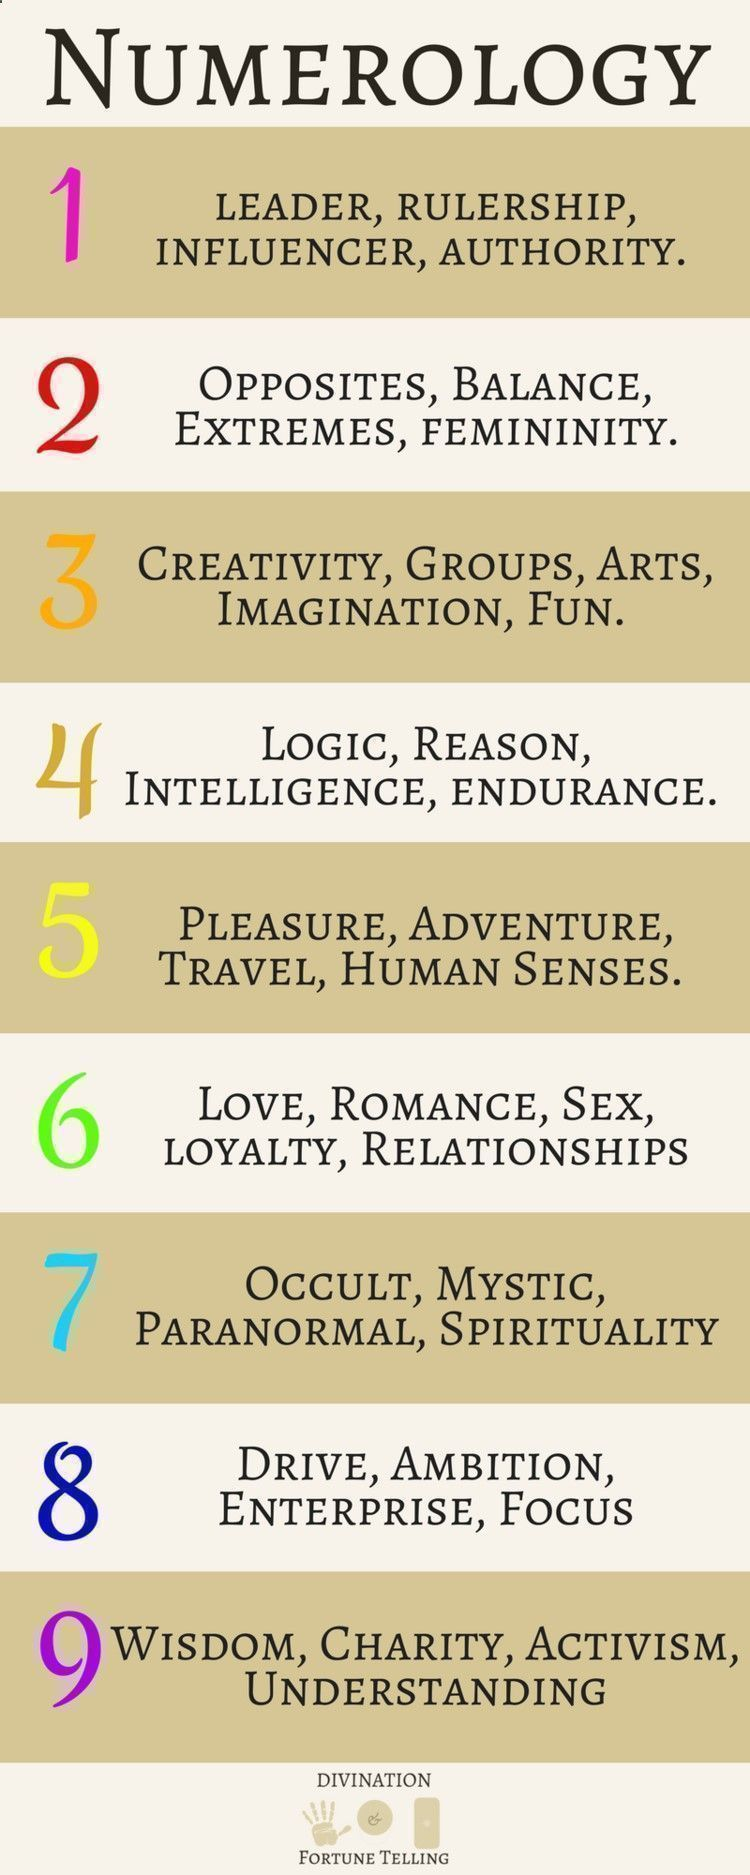 Share your date of birth numerology will give predictions its share your date of birth numerology will give predictions its fun try it nvjuhfo Gallery